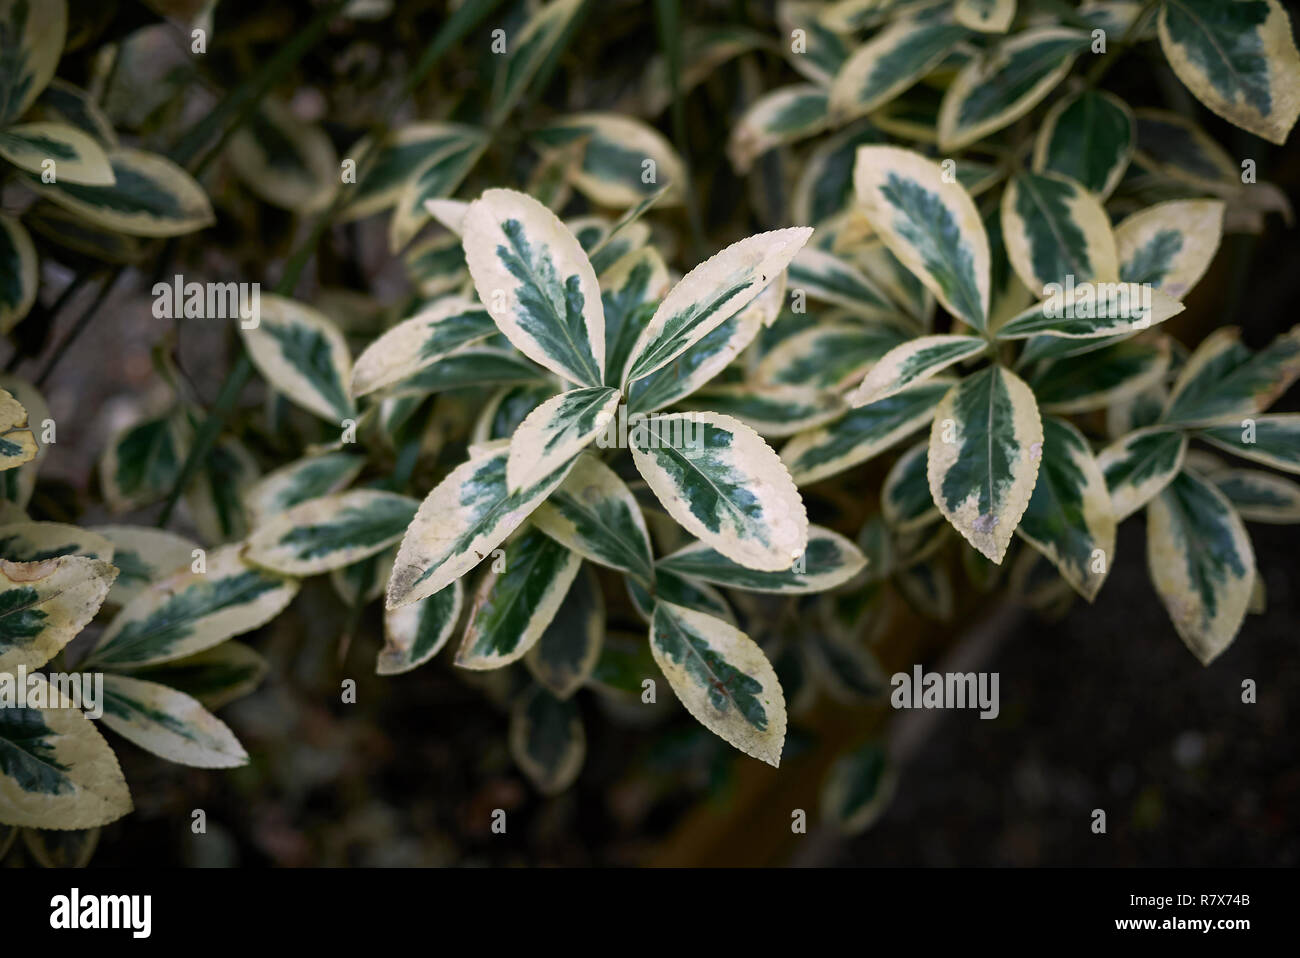 Euonymus fortunei variegated leaves - Stock Image